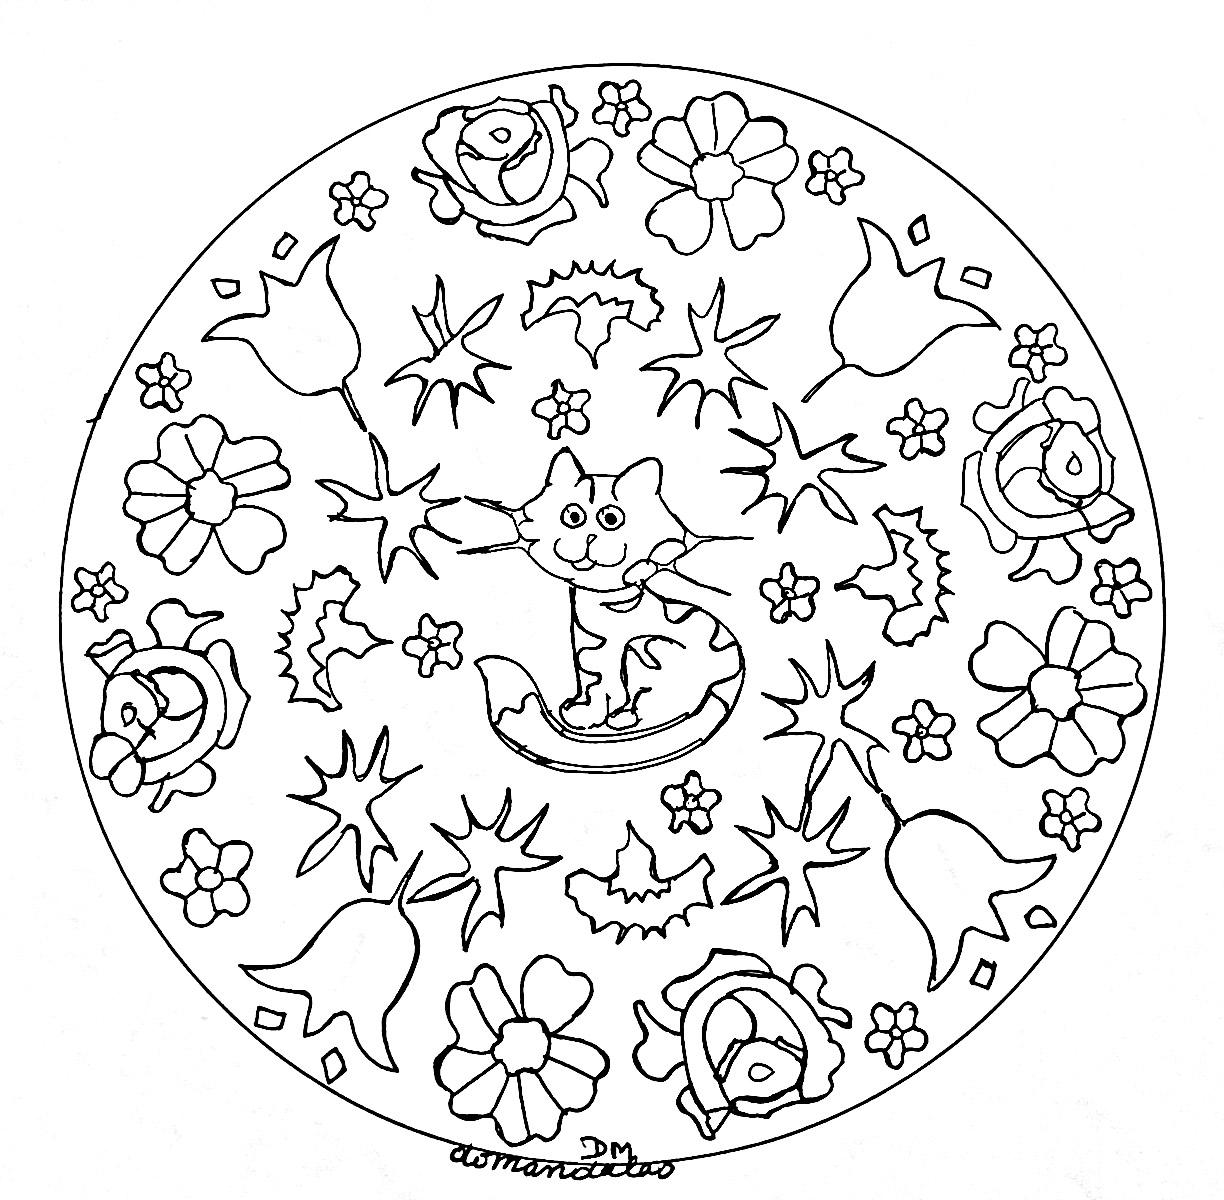 These animals are ready to be colored in this incredible Mandala, you can print it and let your creativity guide you.